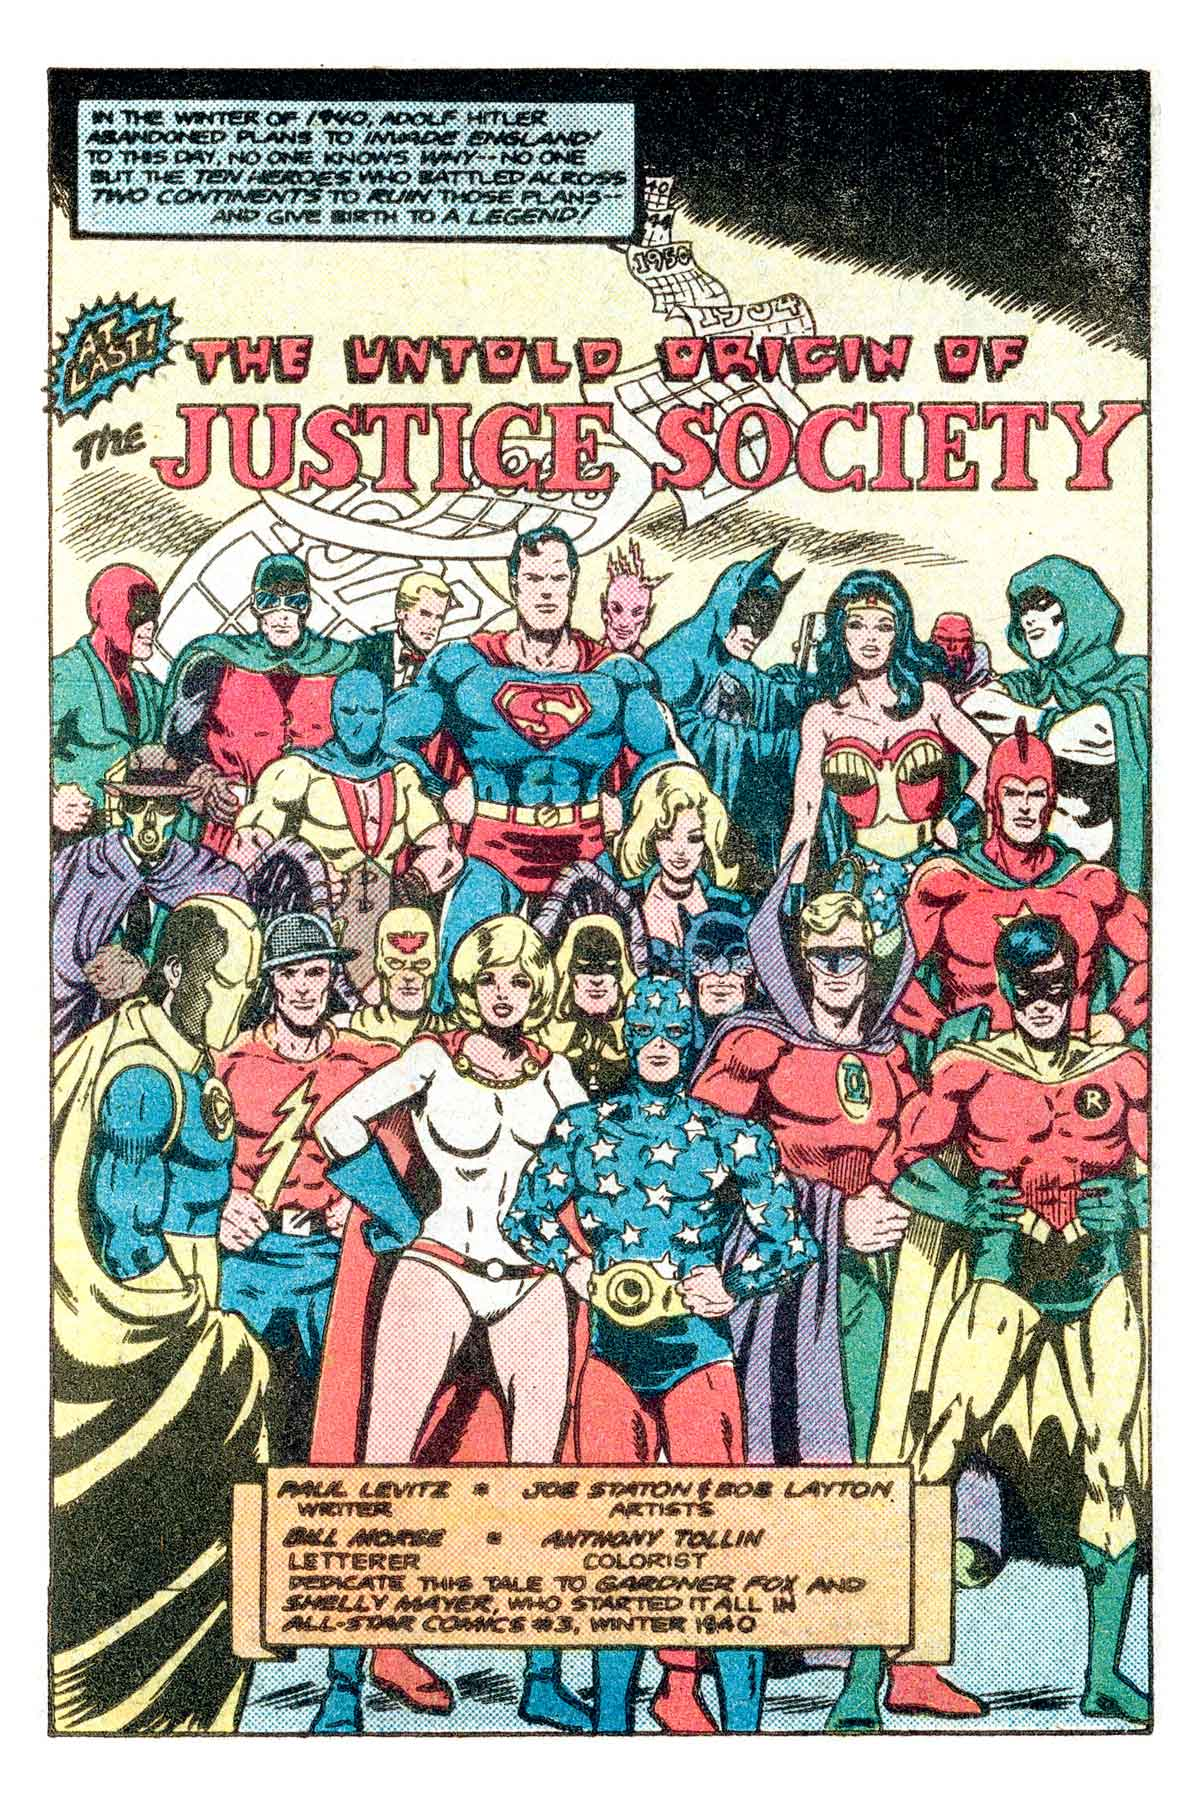 Best of DC Blue Ribbon Digest #21: Justice Society